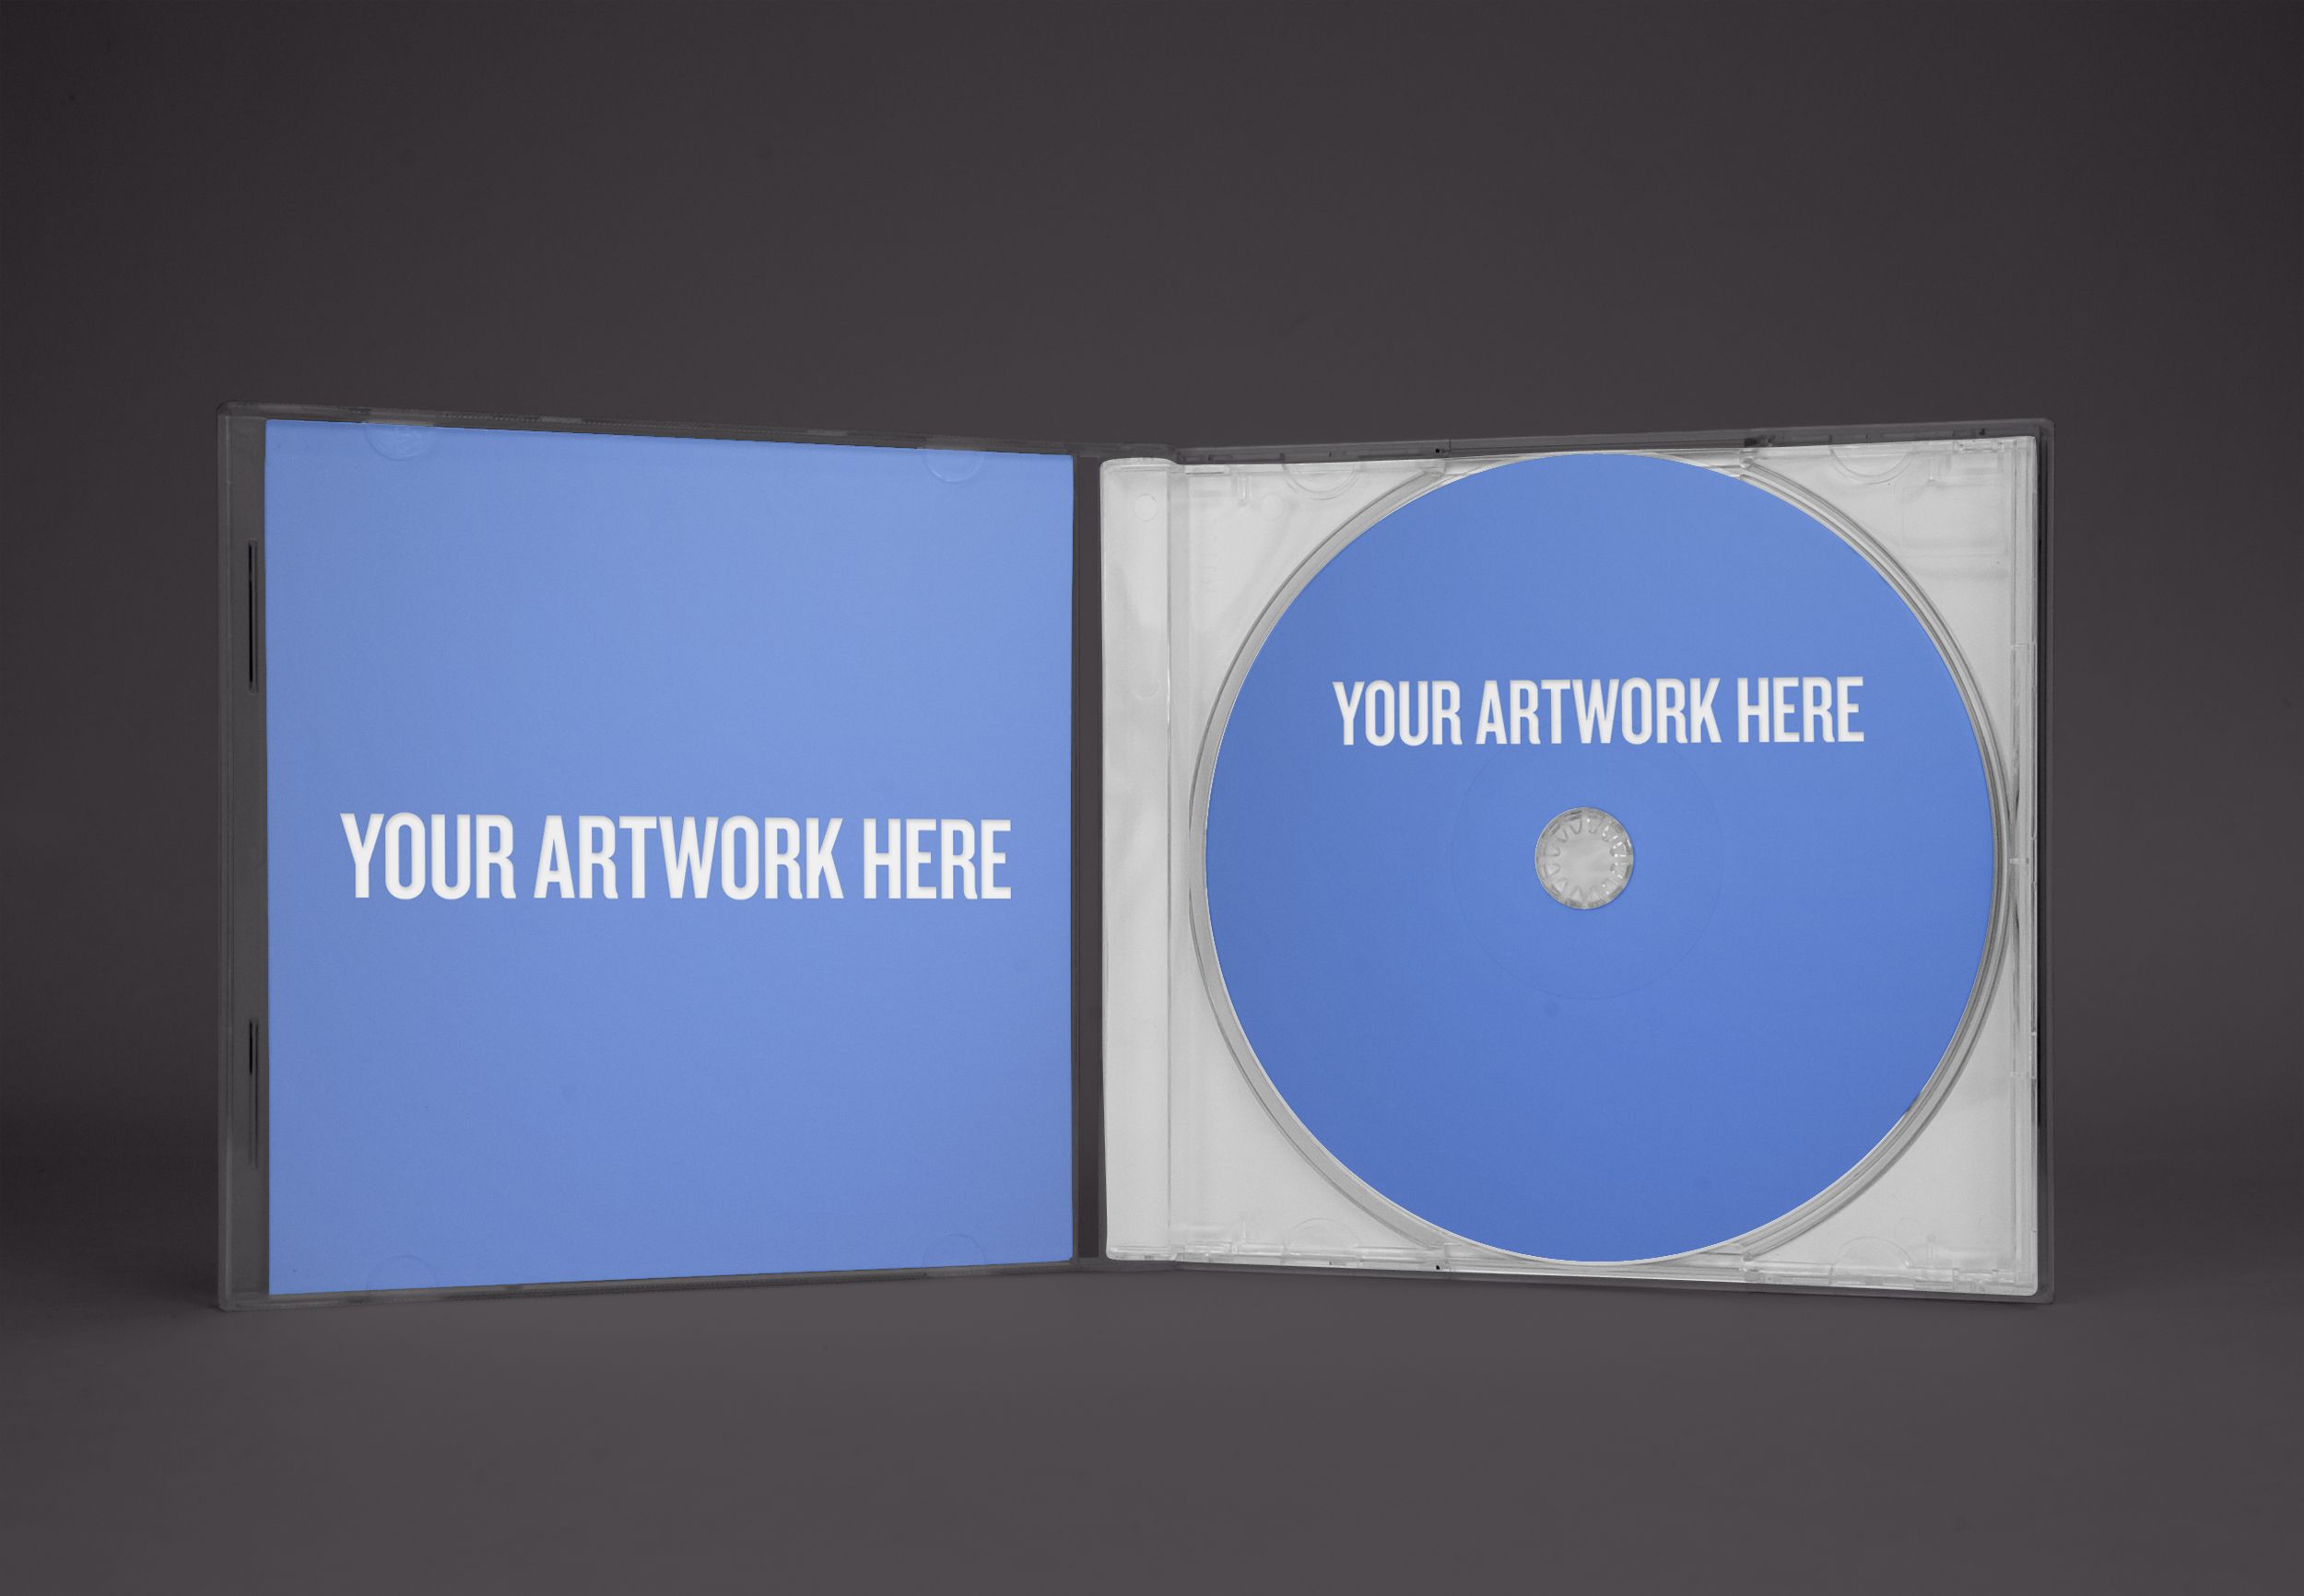 CD case mockup templates v2.0: smart object edition